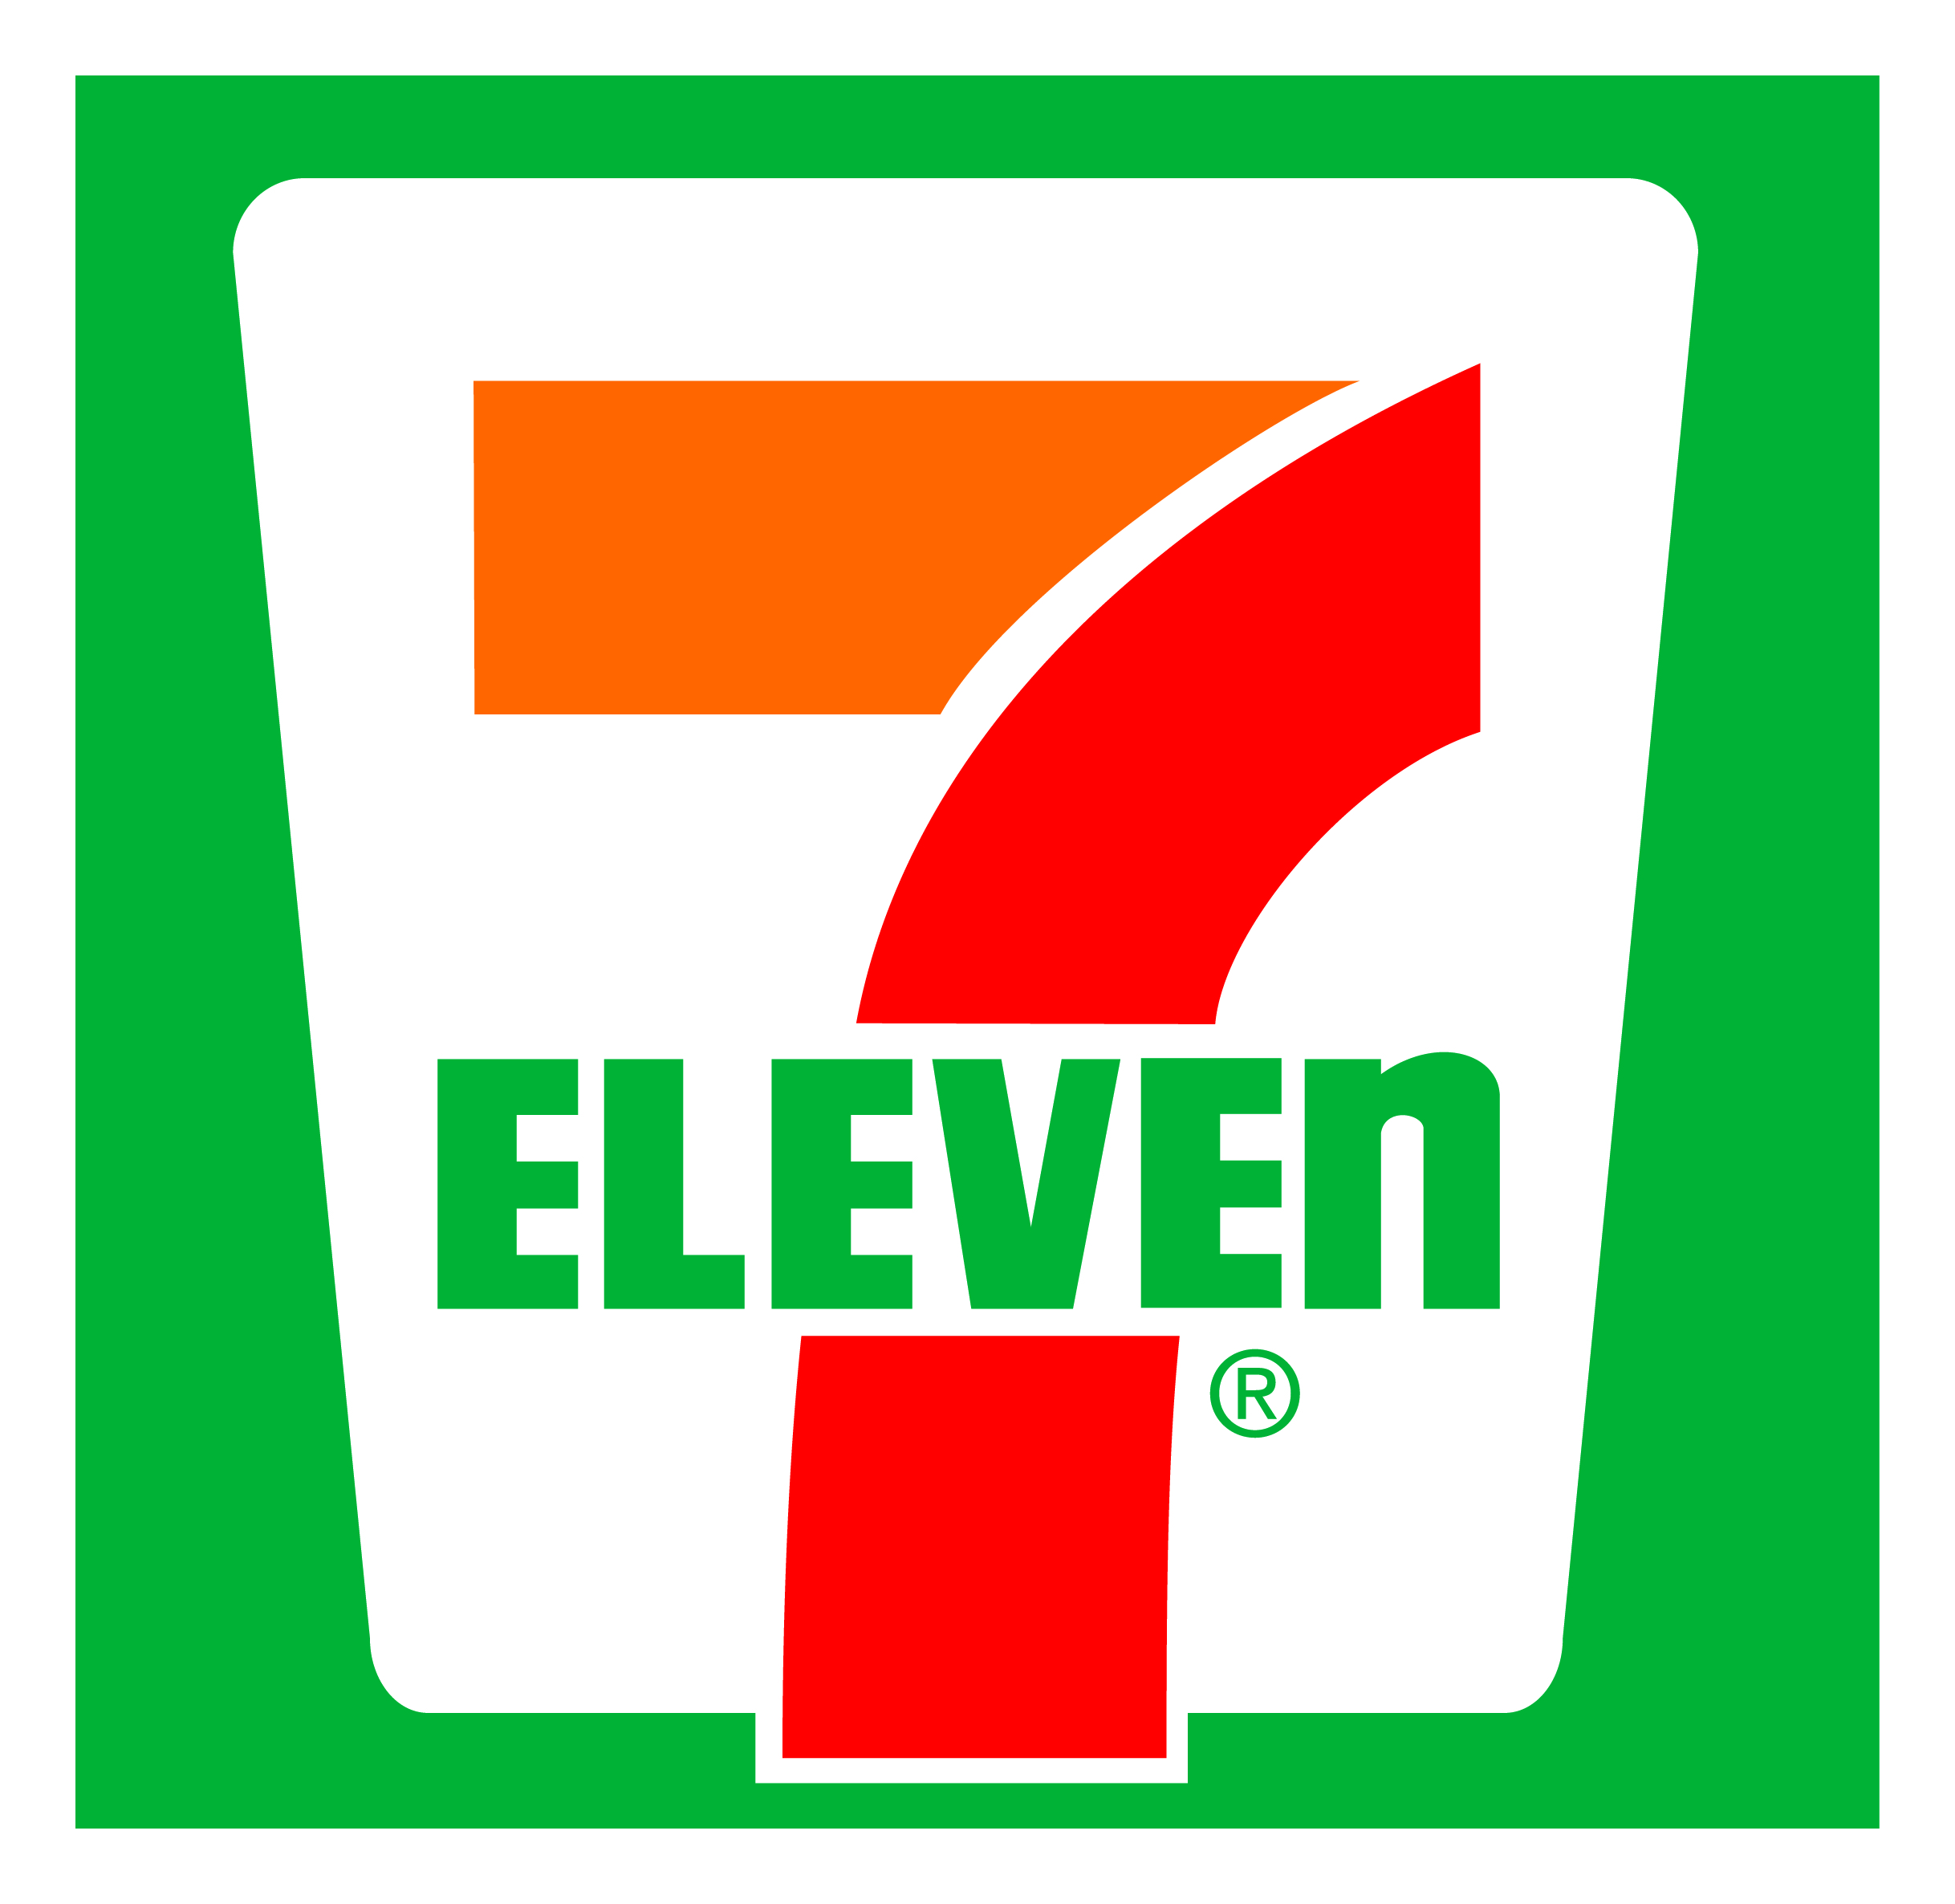 7-eleven_log_color_high res_967KB